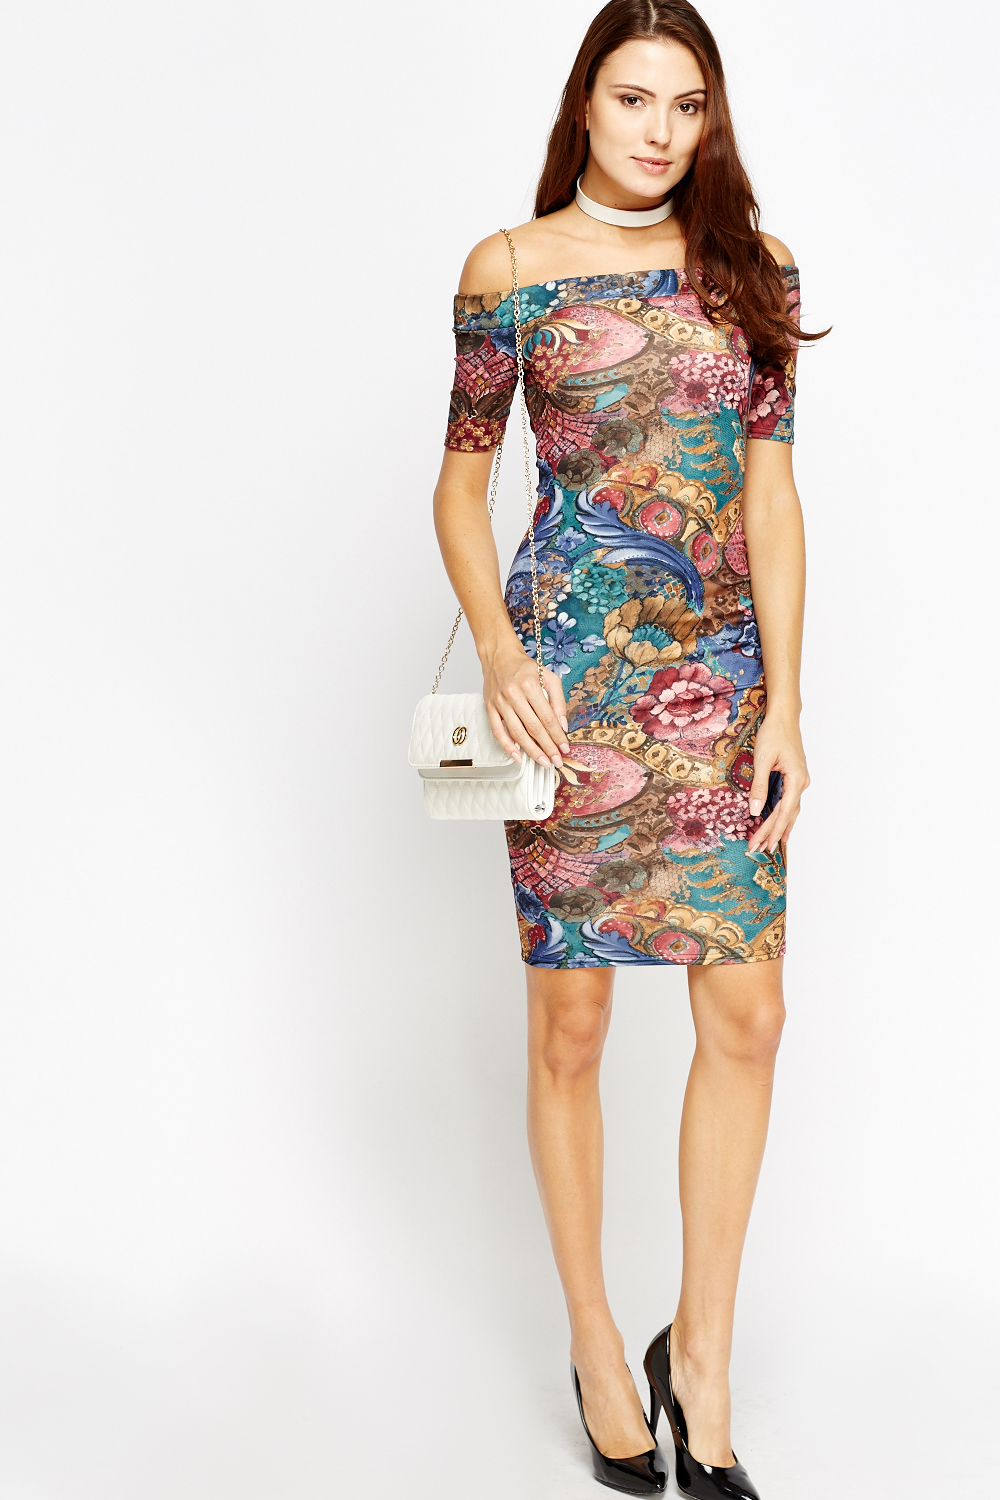 ecfc8b6bd773 Multi Print Off Shoulder Dress - Just £5